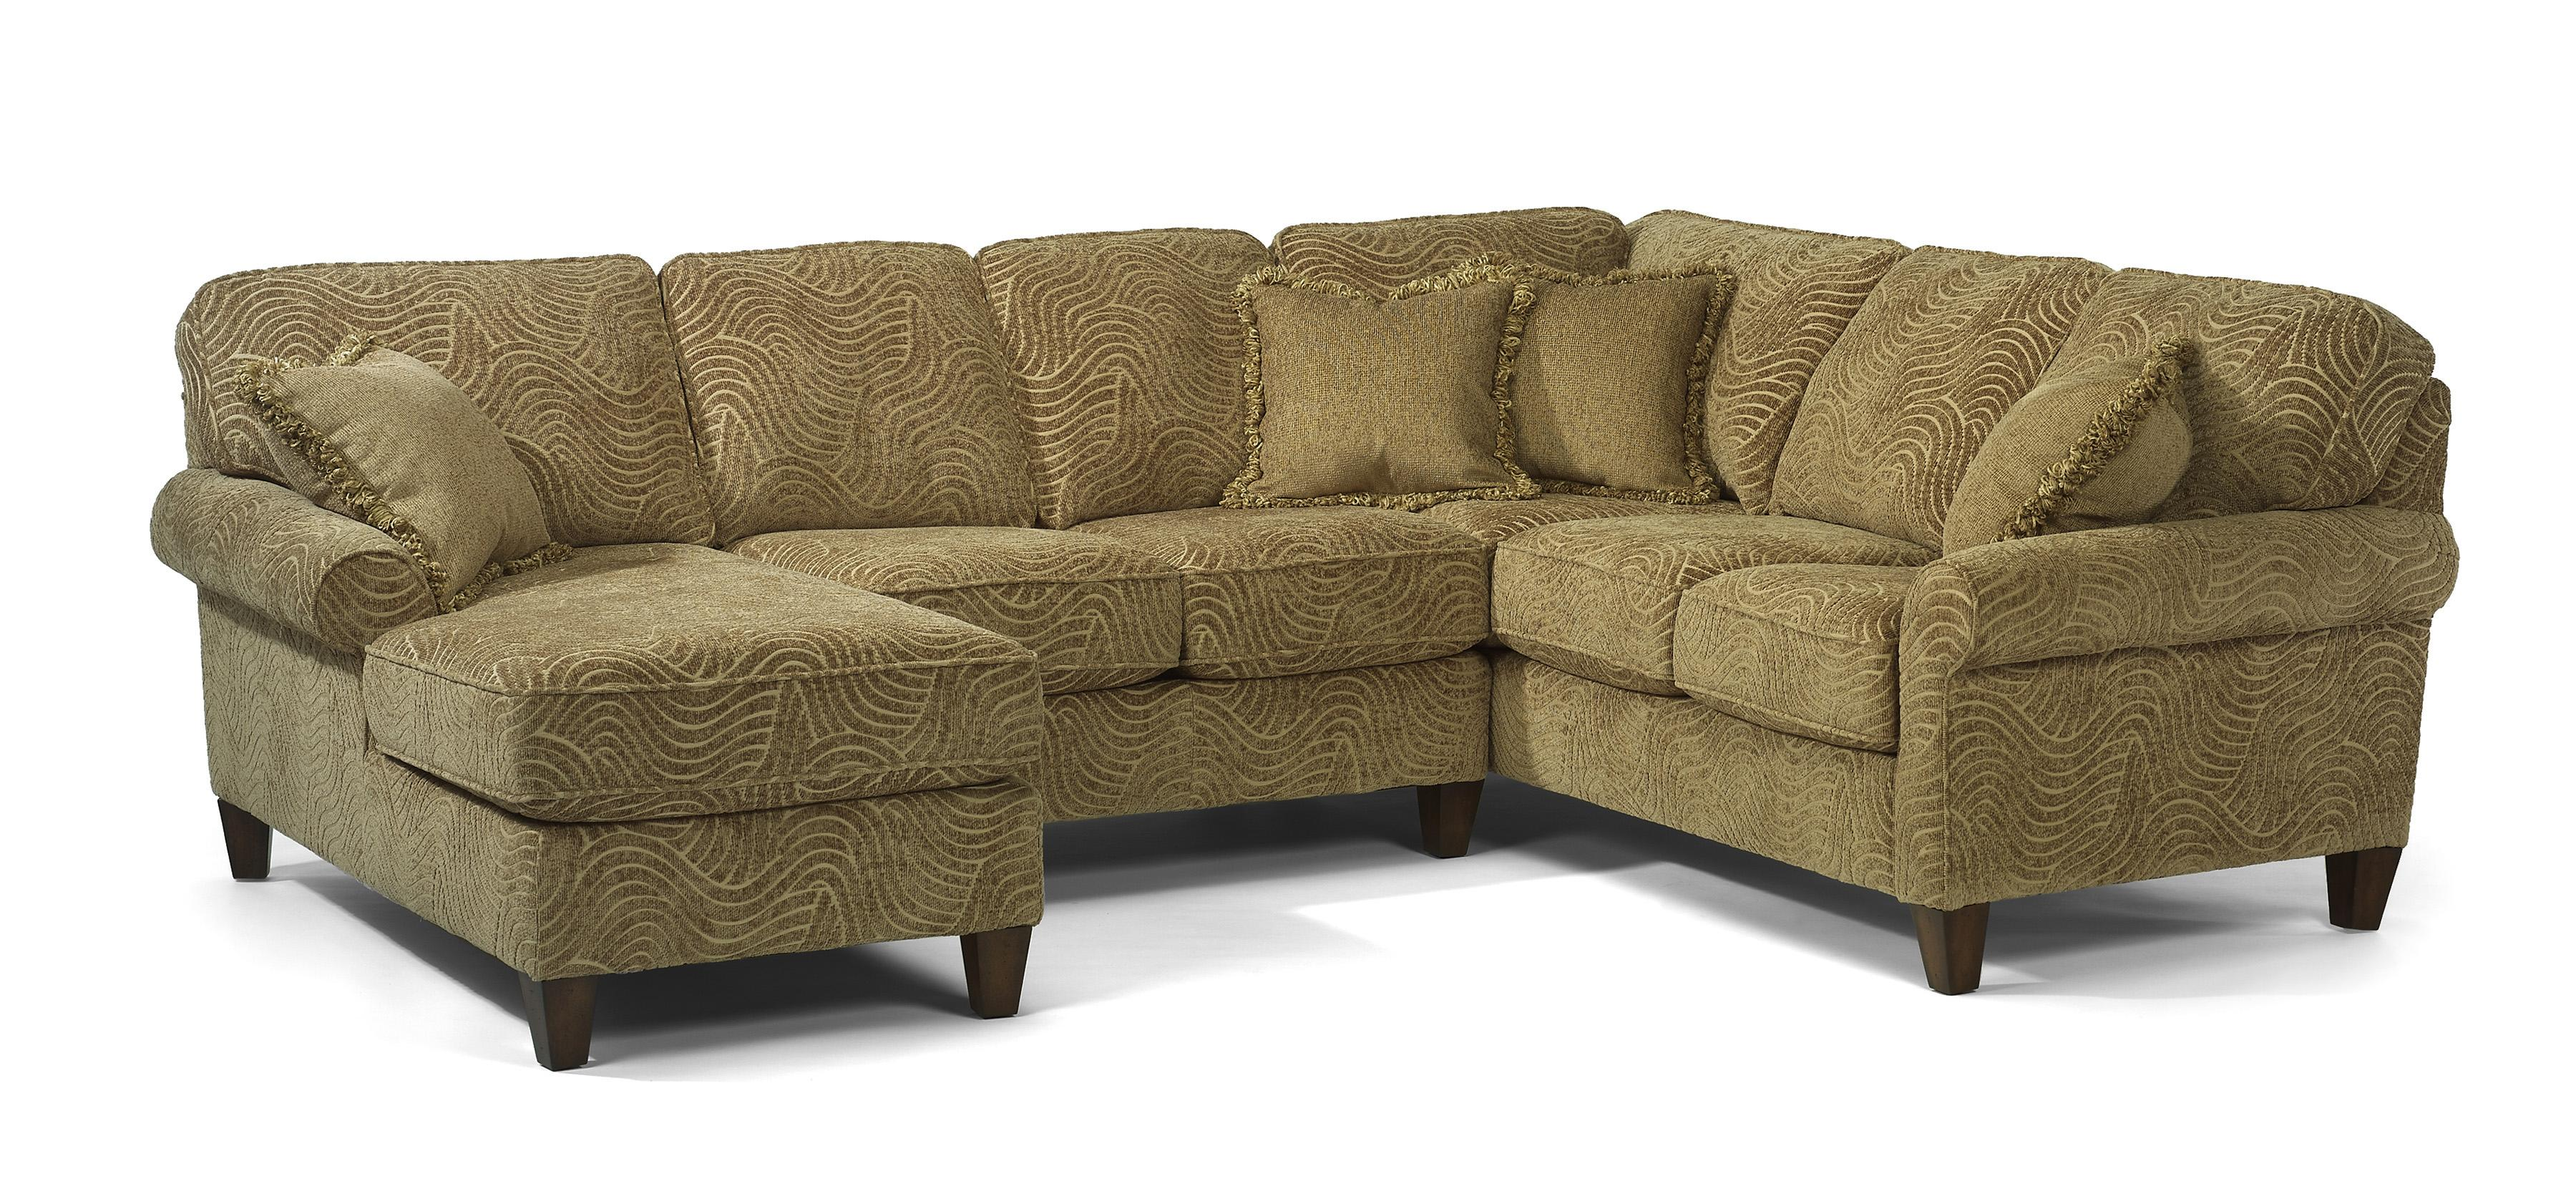 Sofa Express Pineville Nc Flexsteel Westside Casual Corner Sectional Fabric Upholstered Sofa